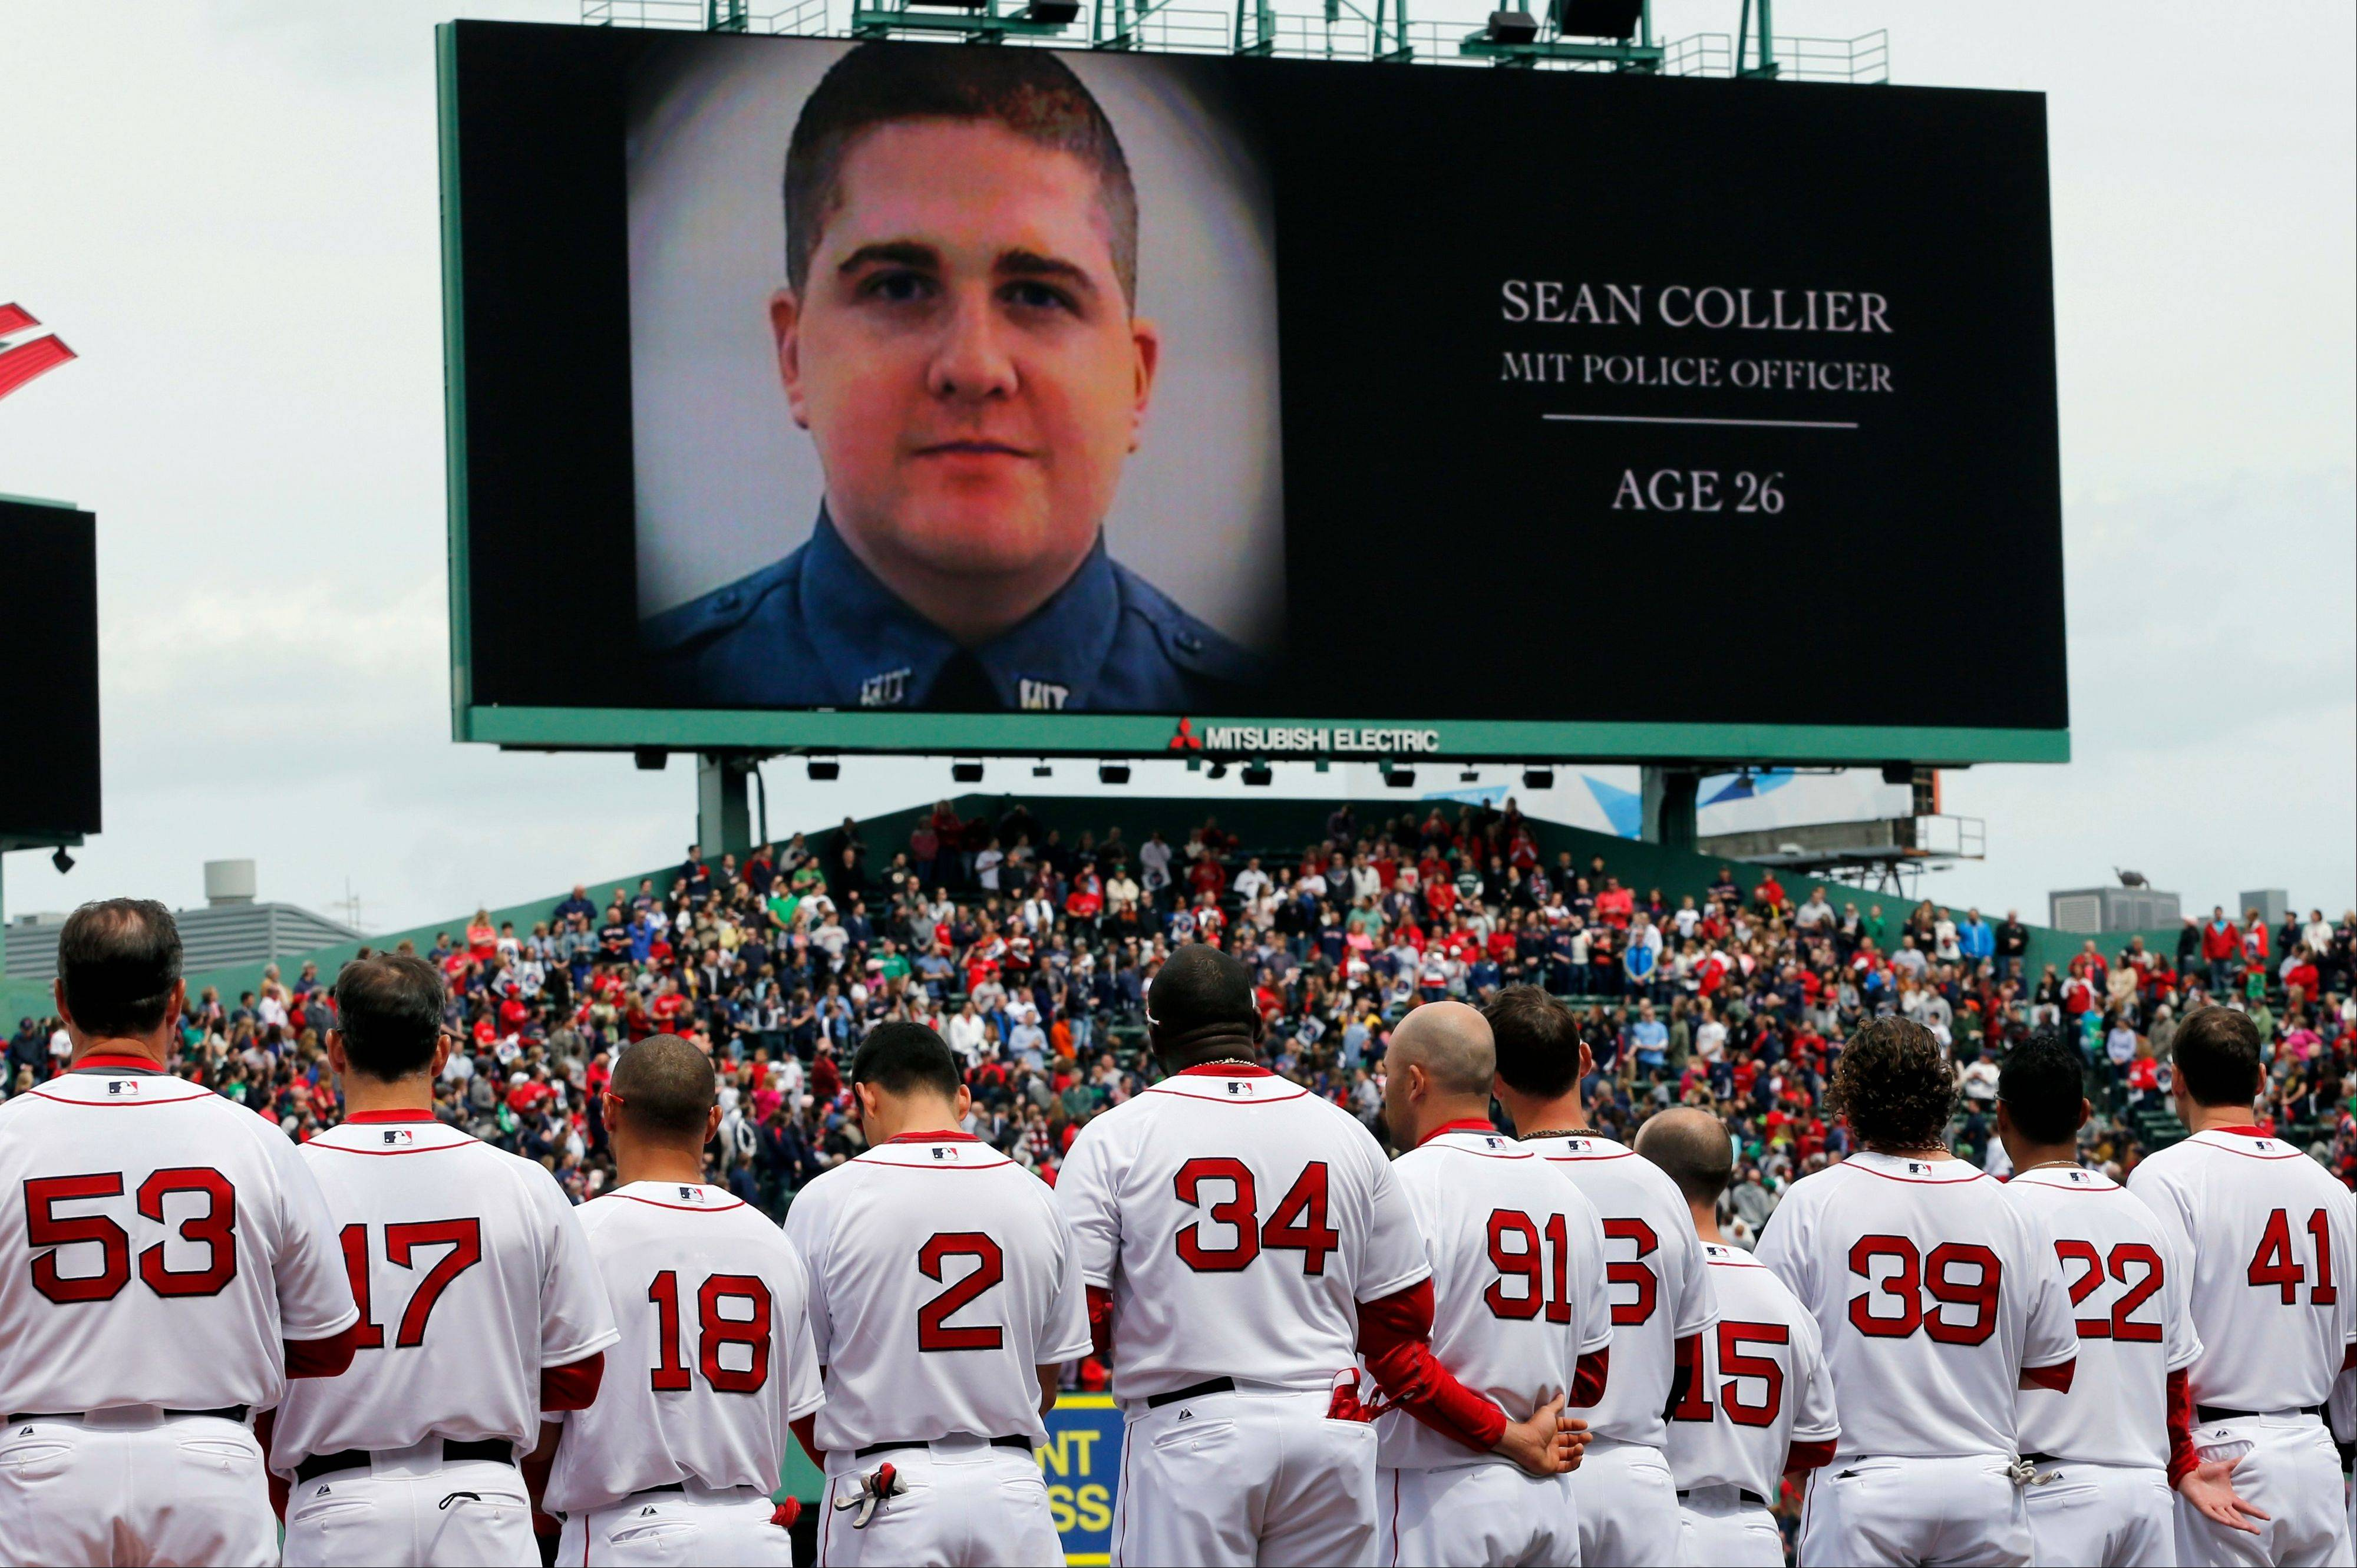 The Boston Red Sox line up during a tribute to victims of the Boston Marathon bombing and its aftermath, as an image of Massachusetts Institute of Technology Police Officer Sean Collier is displayed on the scoreboard, before a baseball game against the Kansas City Royals in Boston, Saturday, April 20, 2013.